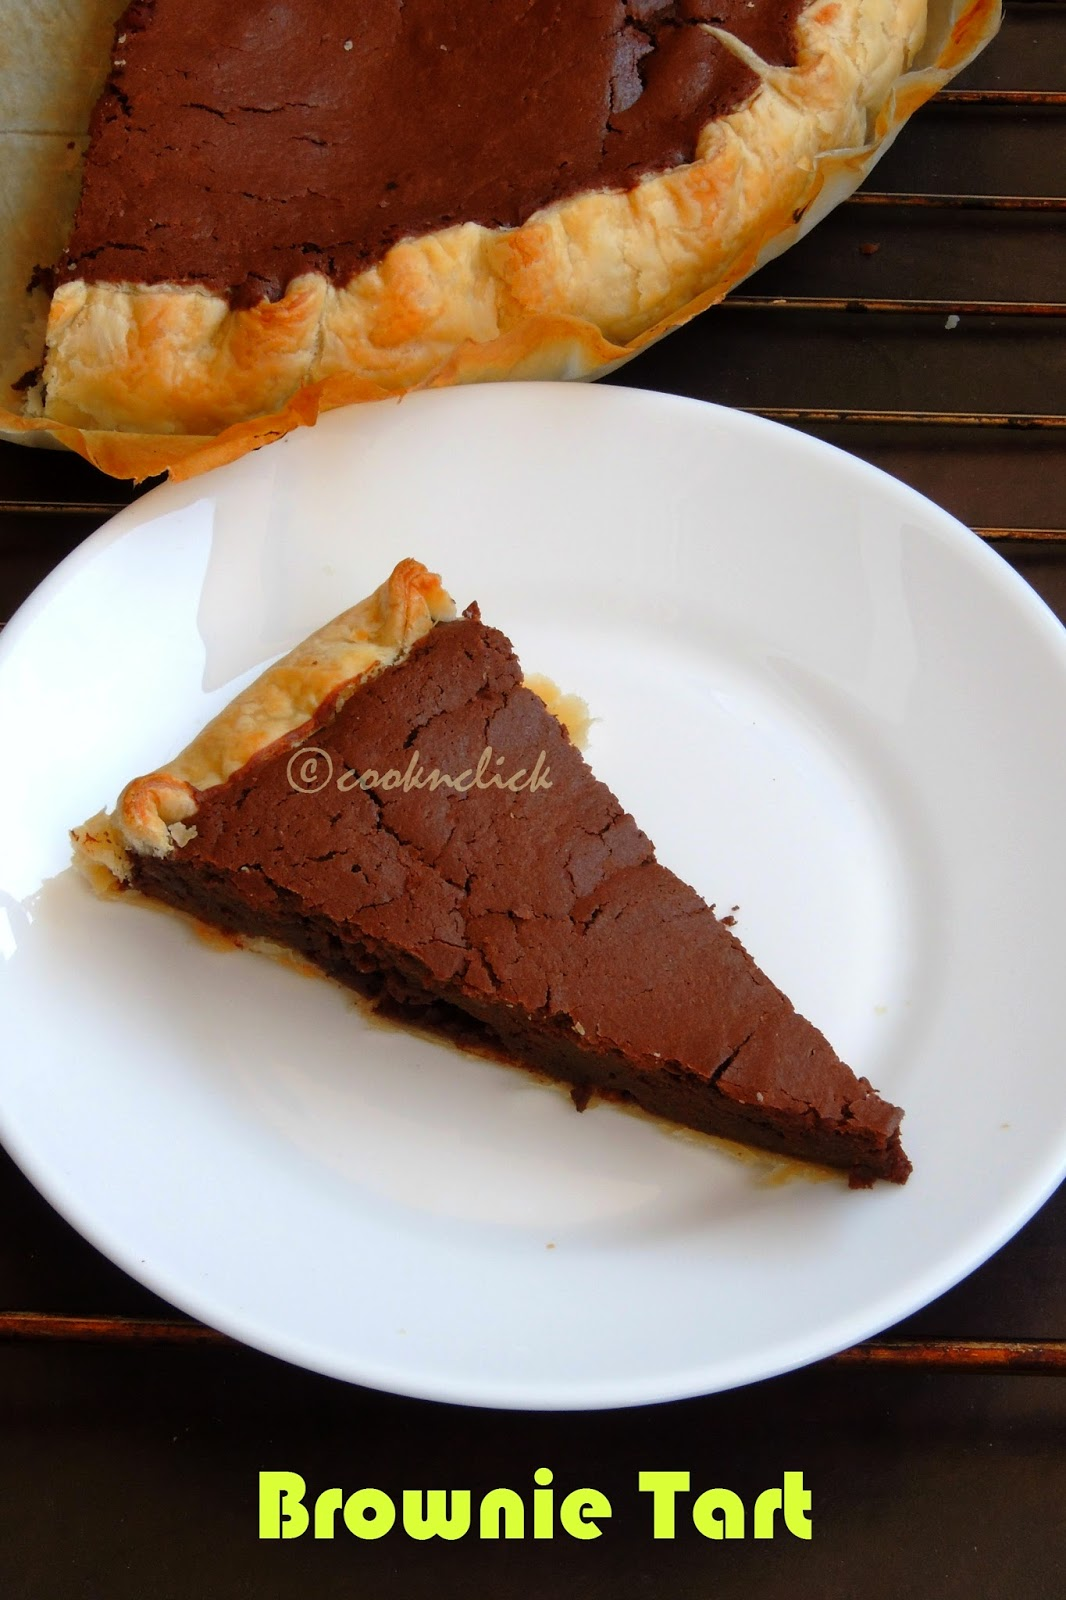 Chocolate brownie tart, brownie tart